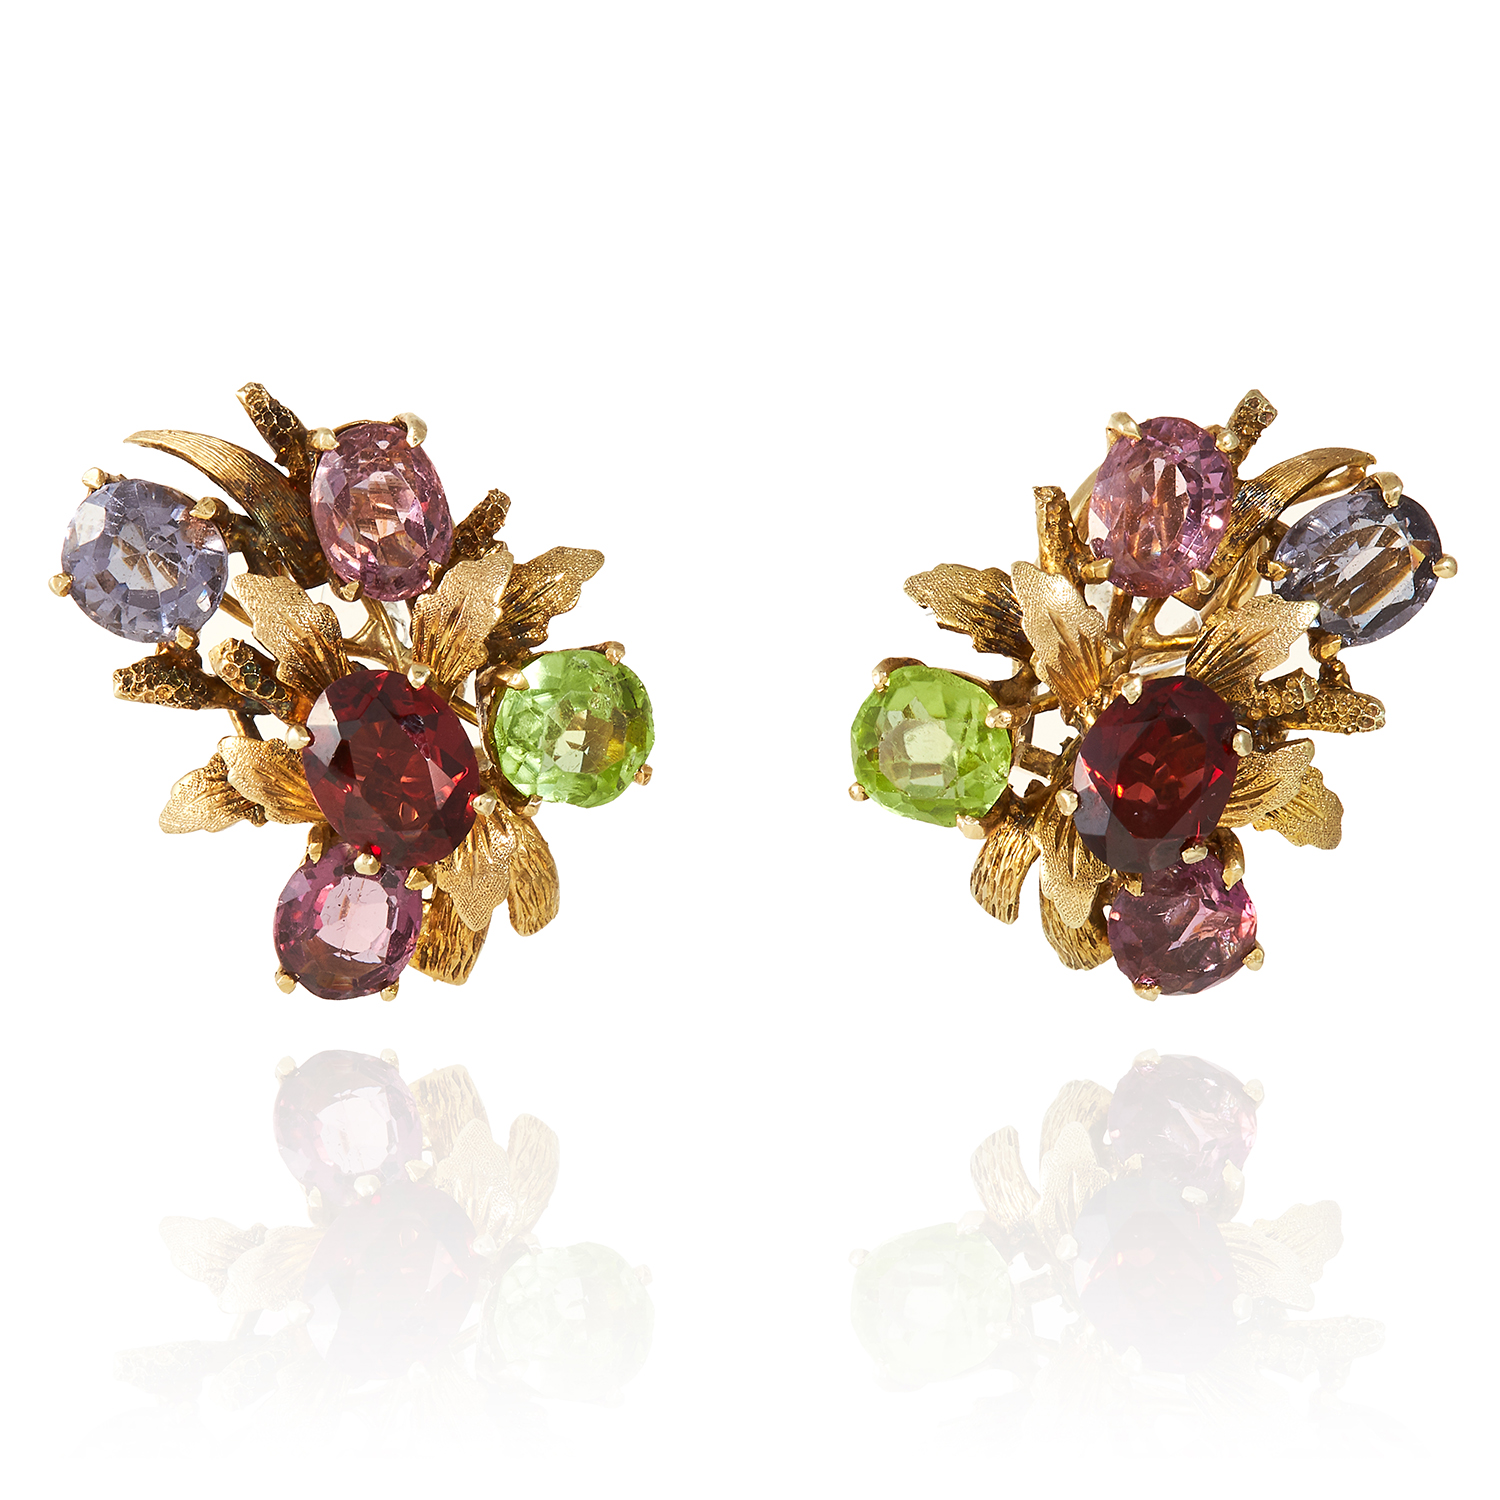 A PAIR OF GEMSET EARRINGS in yellow gold, set with various oval cut gems including garnet, peridot